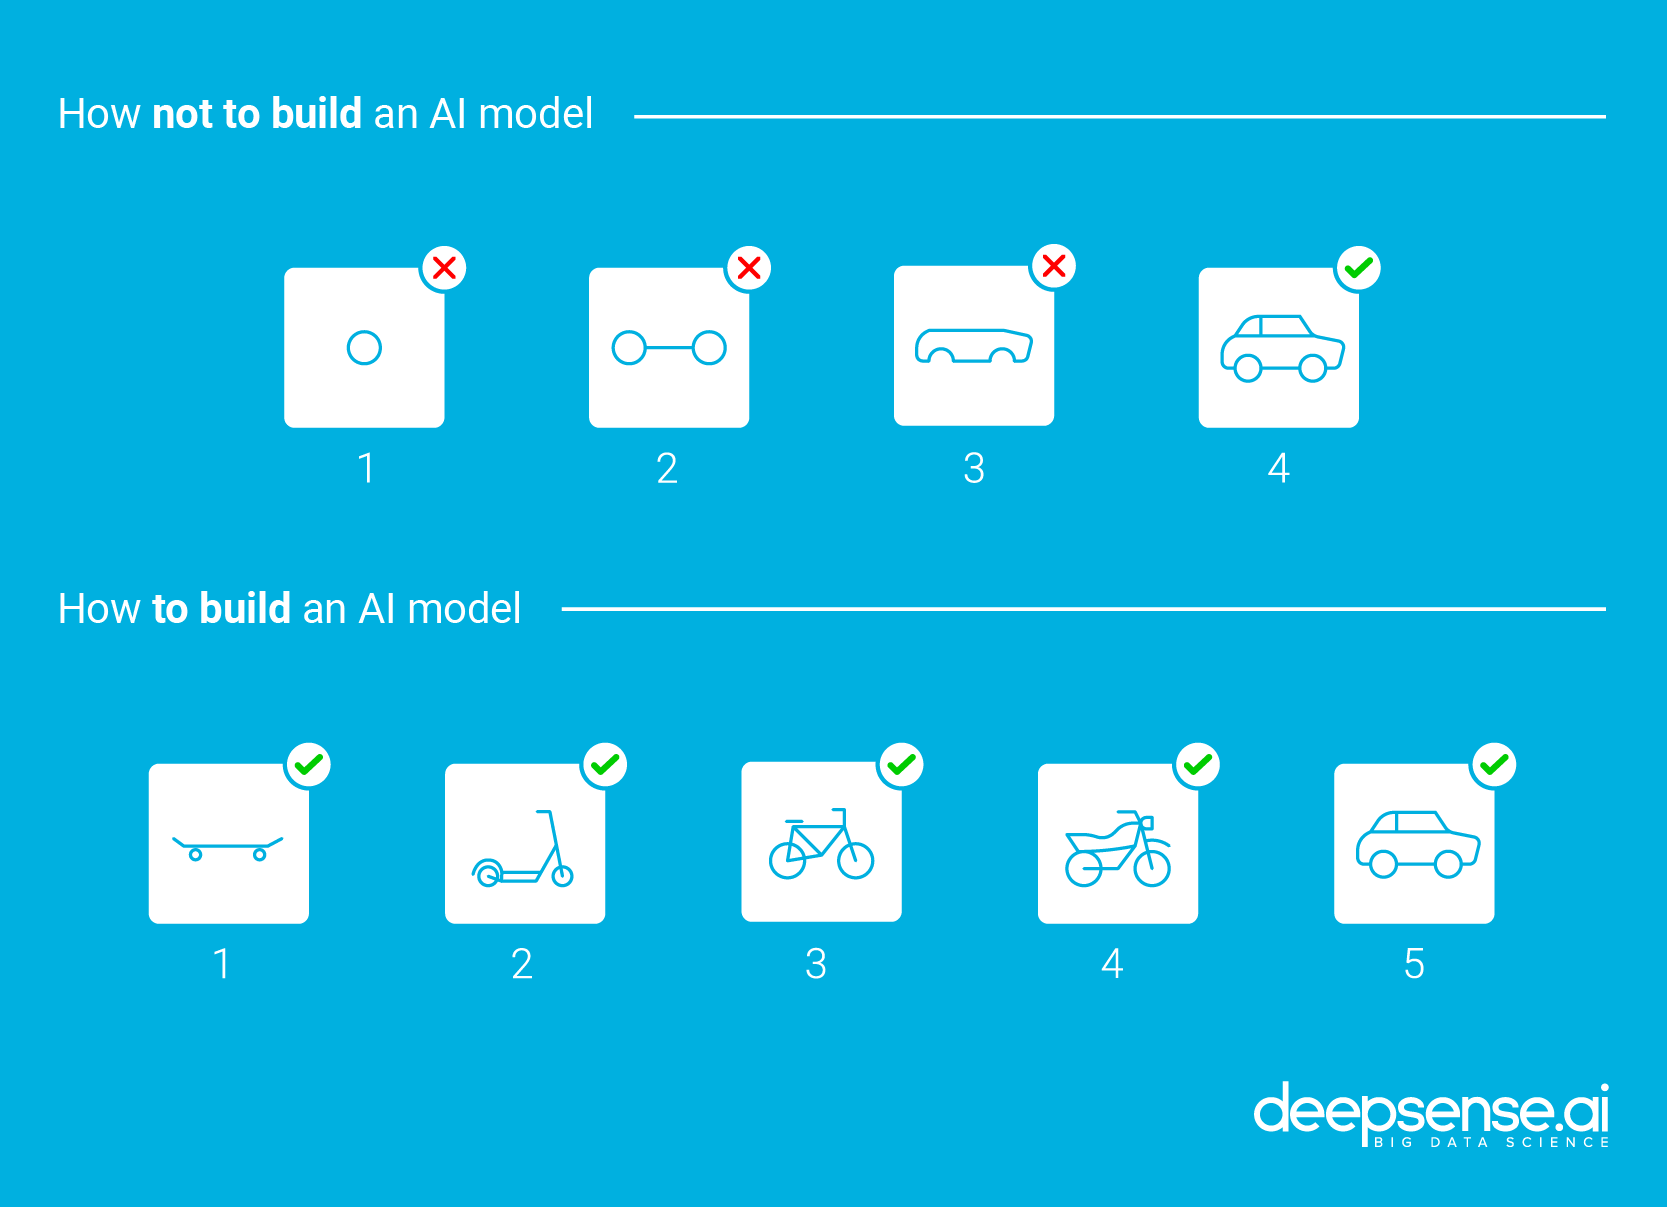 Blog posts Archives - Page 2 of 12 - deepsense ai